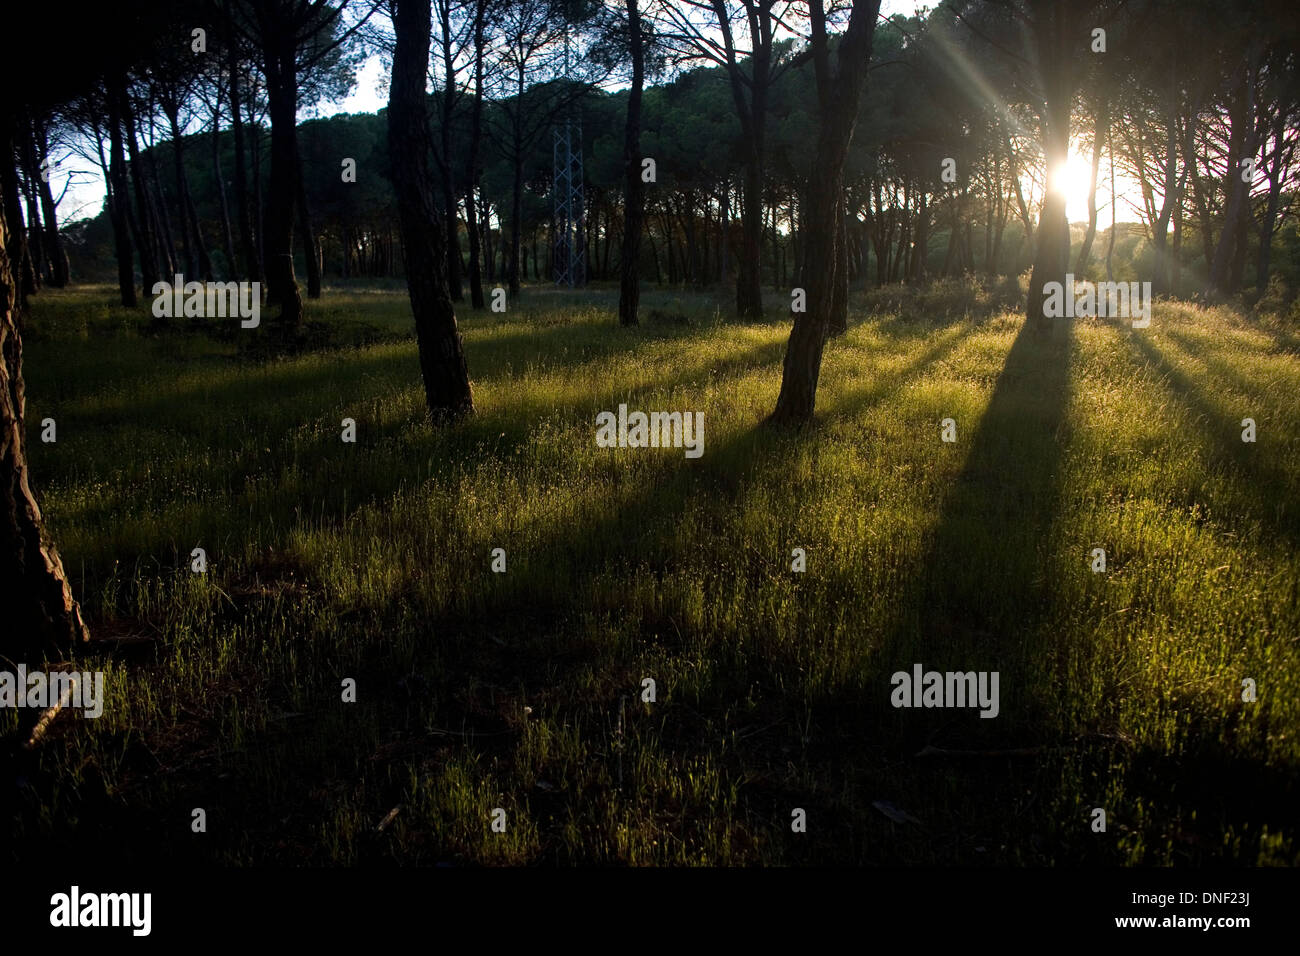 Pine forest in Donana National Park, Huelva province, Andalusia, Spain - Stock Image